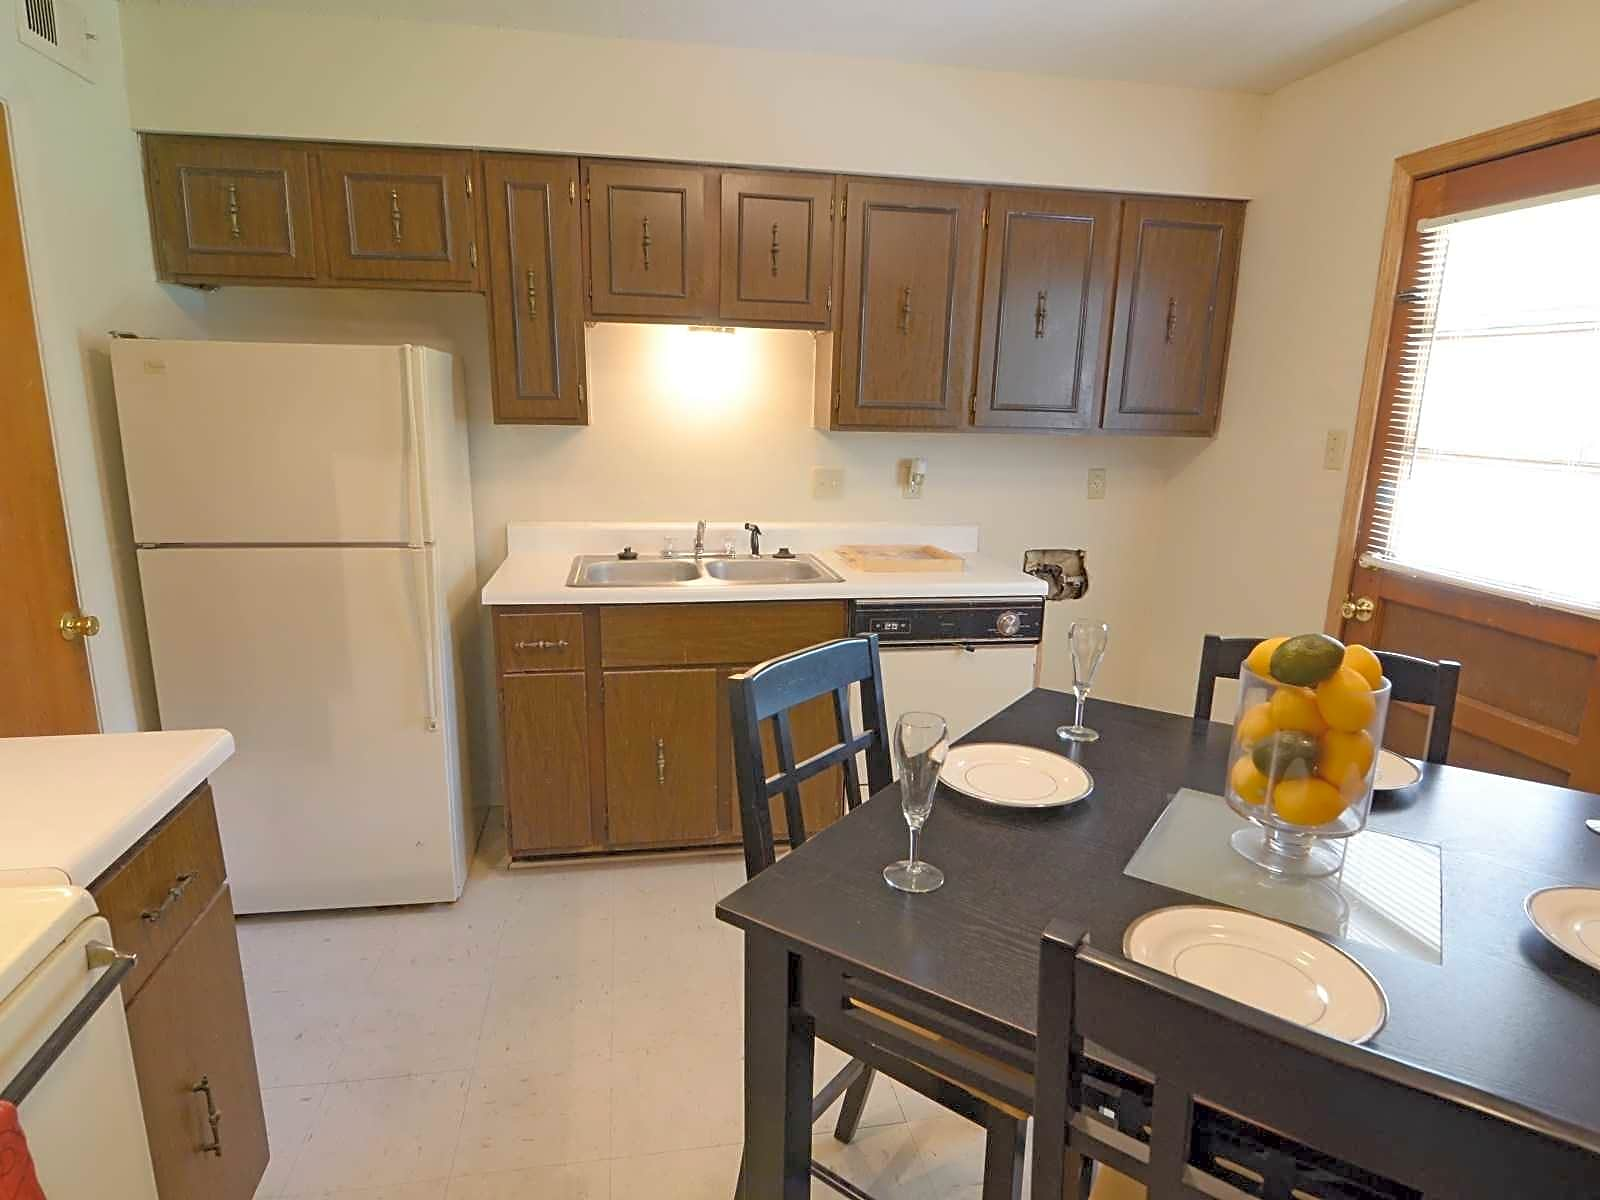 Colleges In Memphis Tn >> Country View I & II Apartments - Memphis, TN 38128